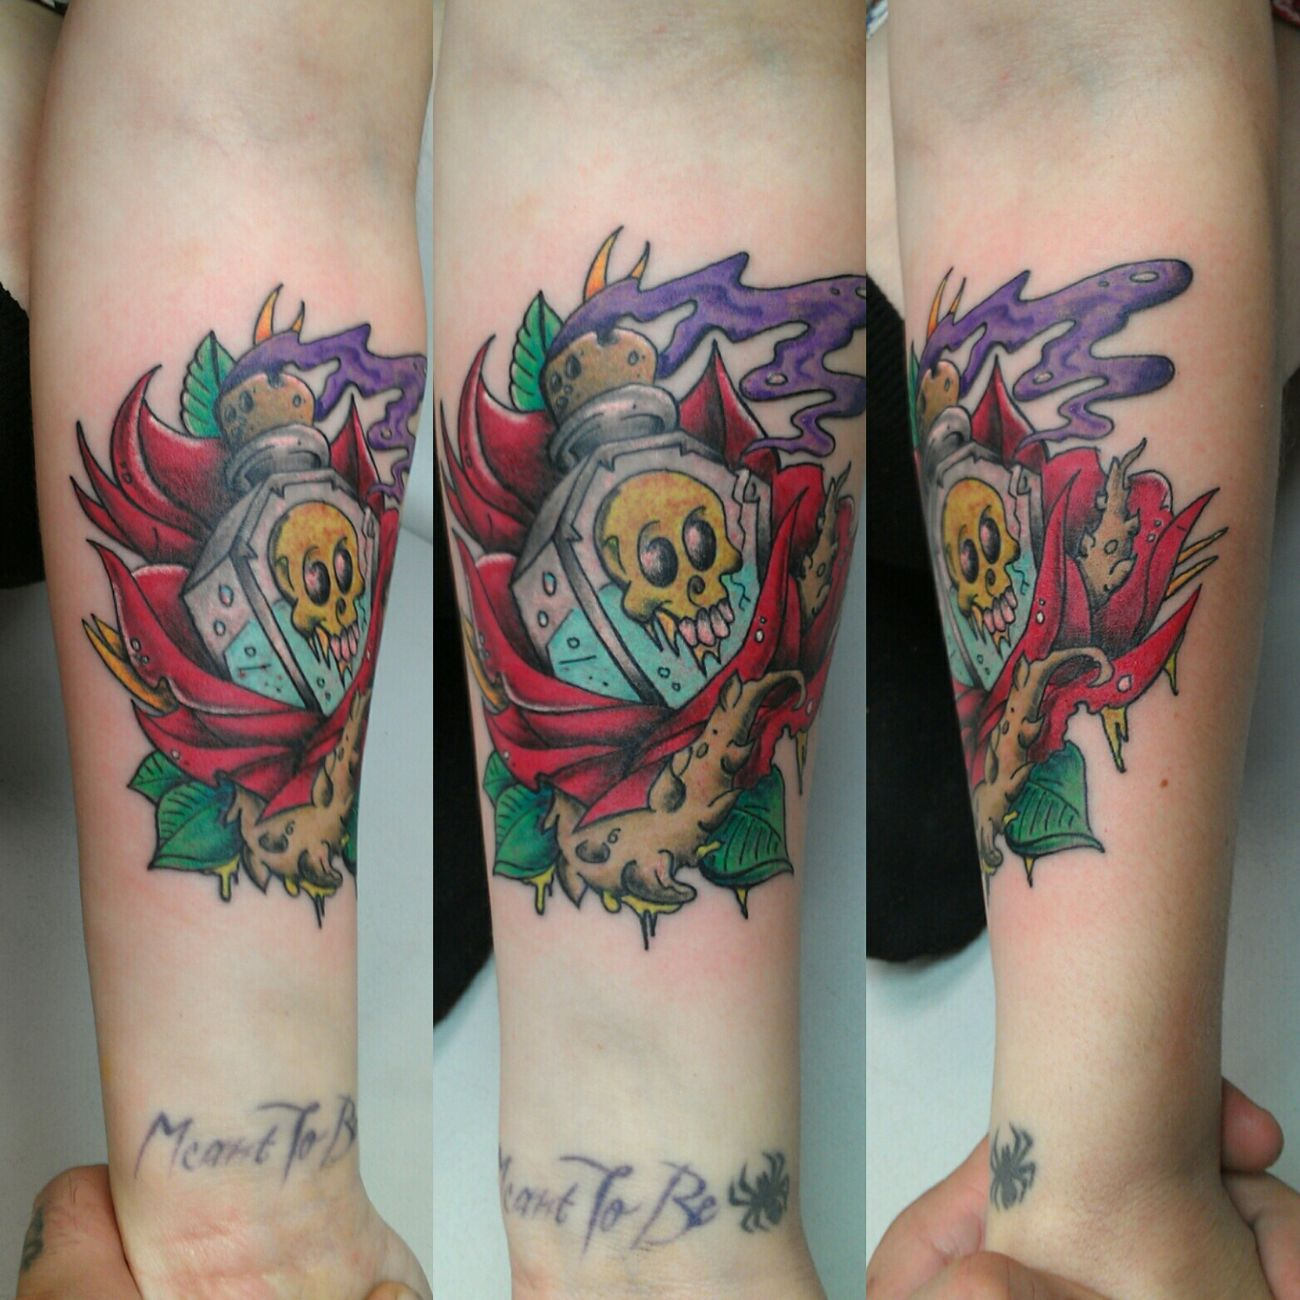 Tattoosbyniko Tattoo New Skool Tattoo New School New Skool Color Bomb